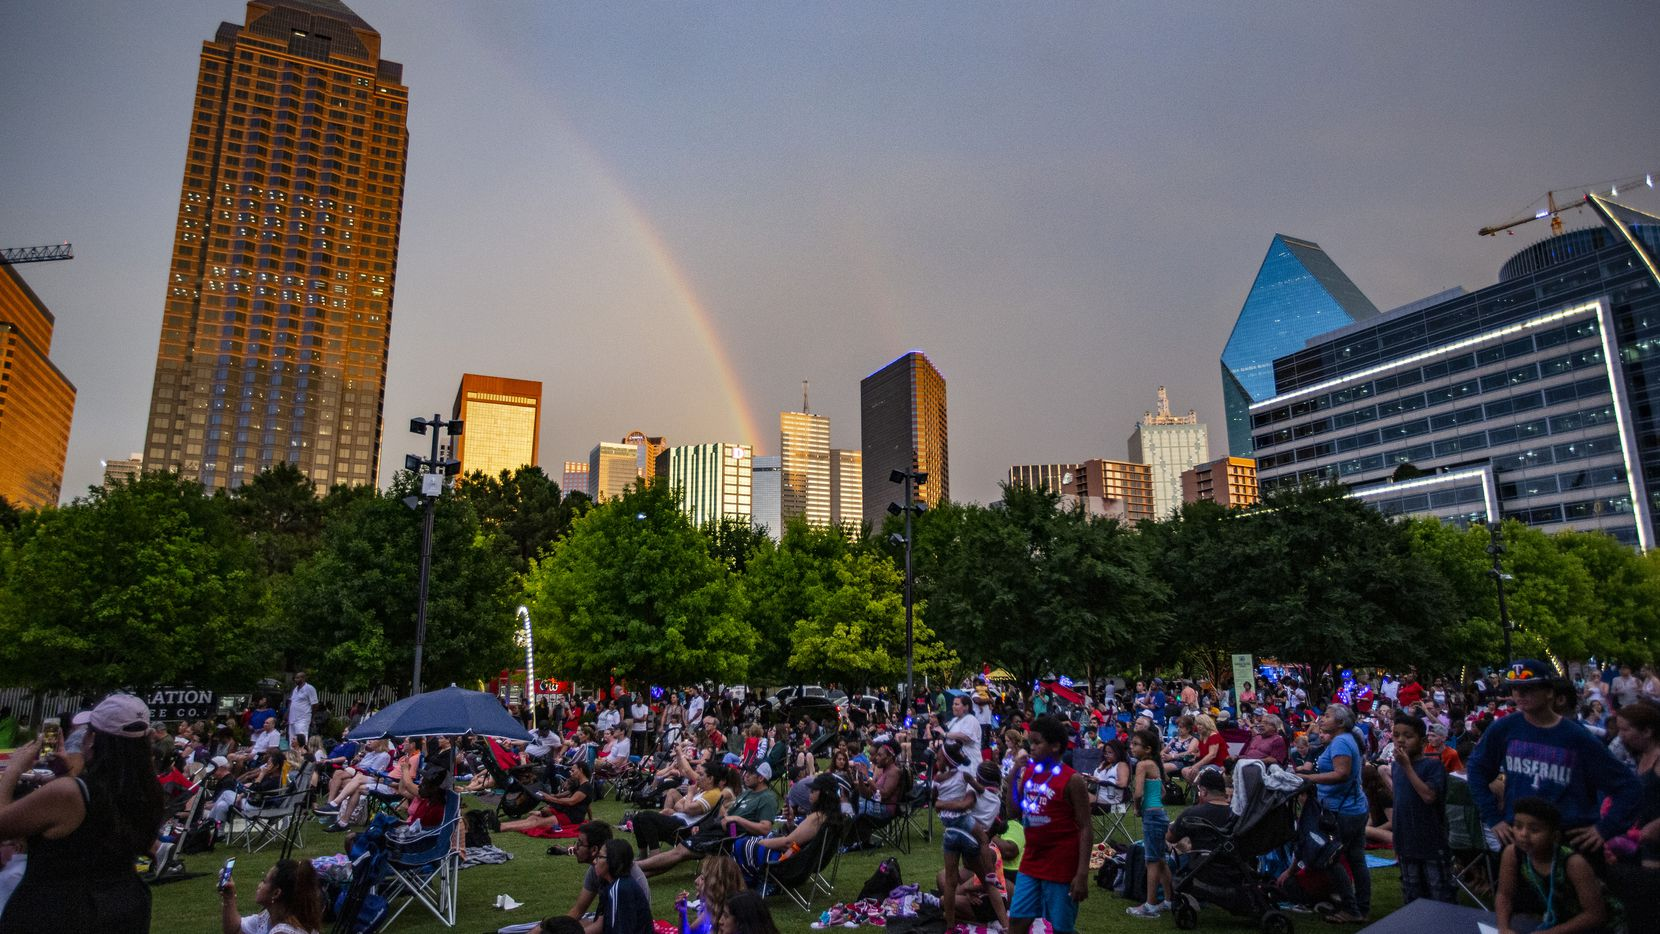 A rainbow appears over downtown Dallas after rain showers passed through during Klyde Warren Park's Independence Day Celebration on June 29.